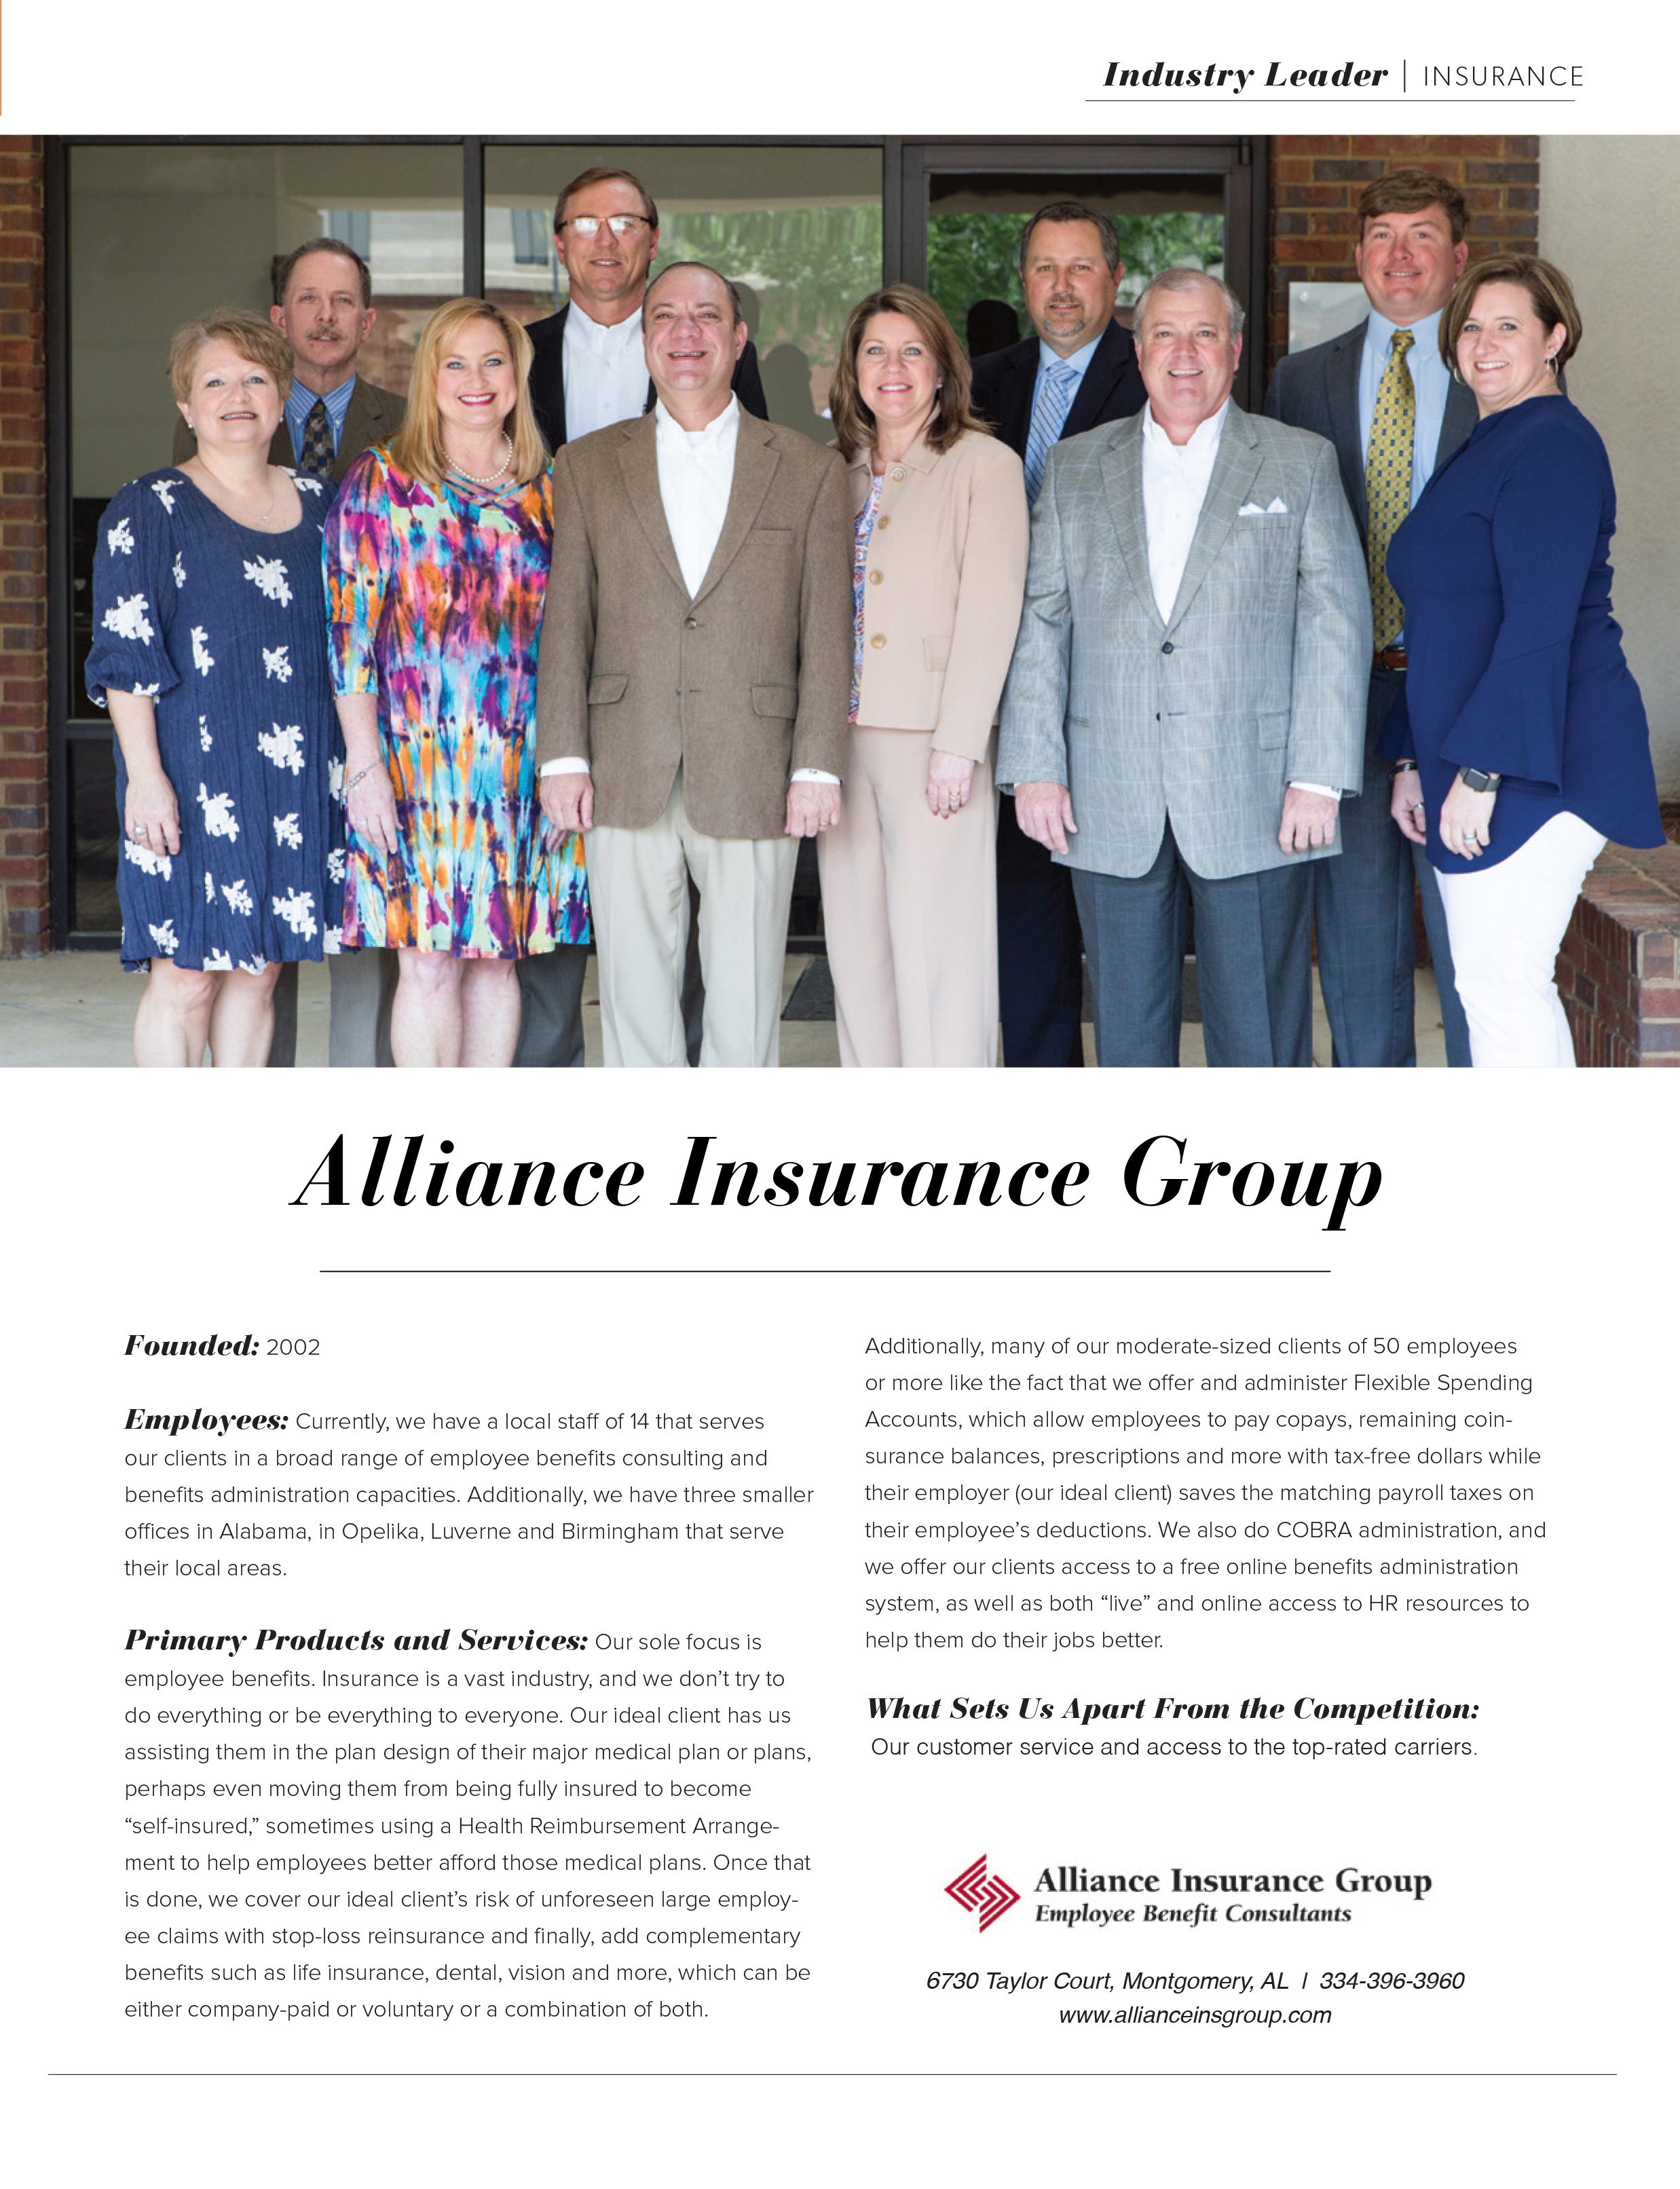 Industry Leader Alliance Insurance Group, MBJ, Montgomery Business Journal, Montgomery Chamber of Commerce